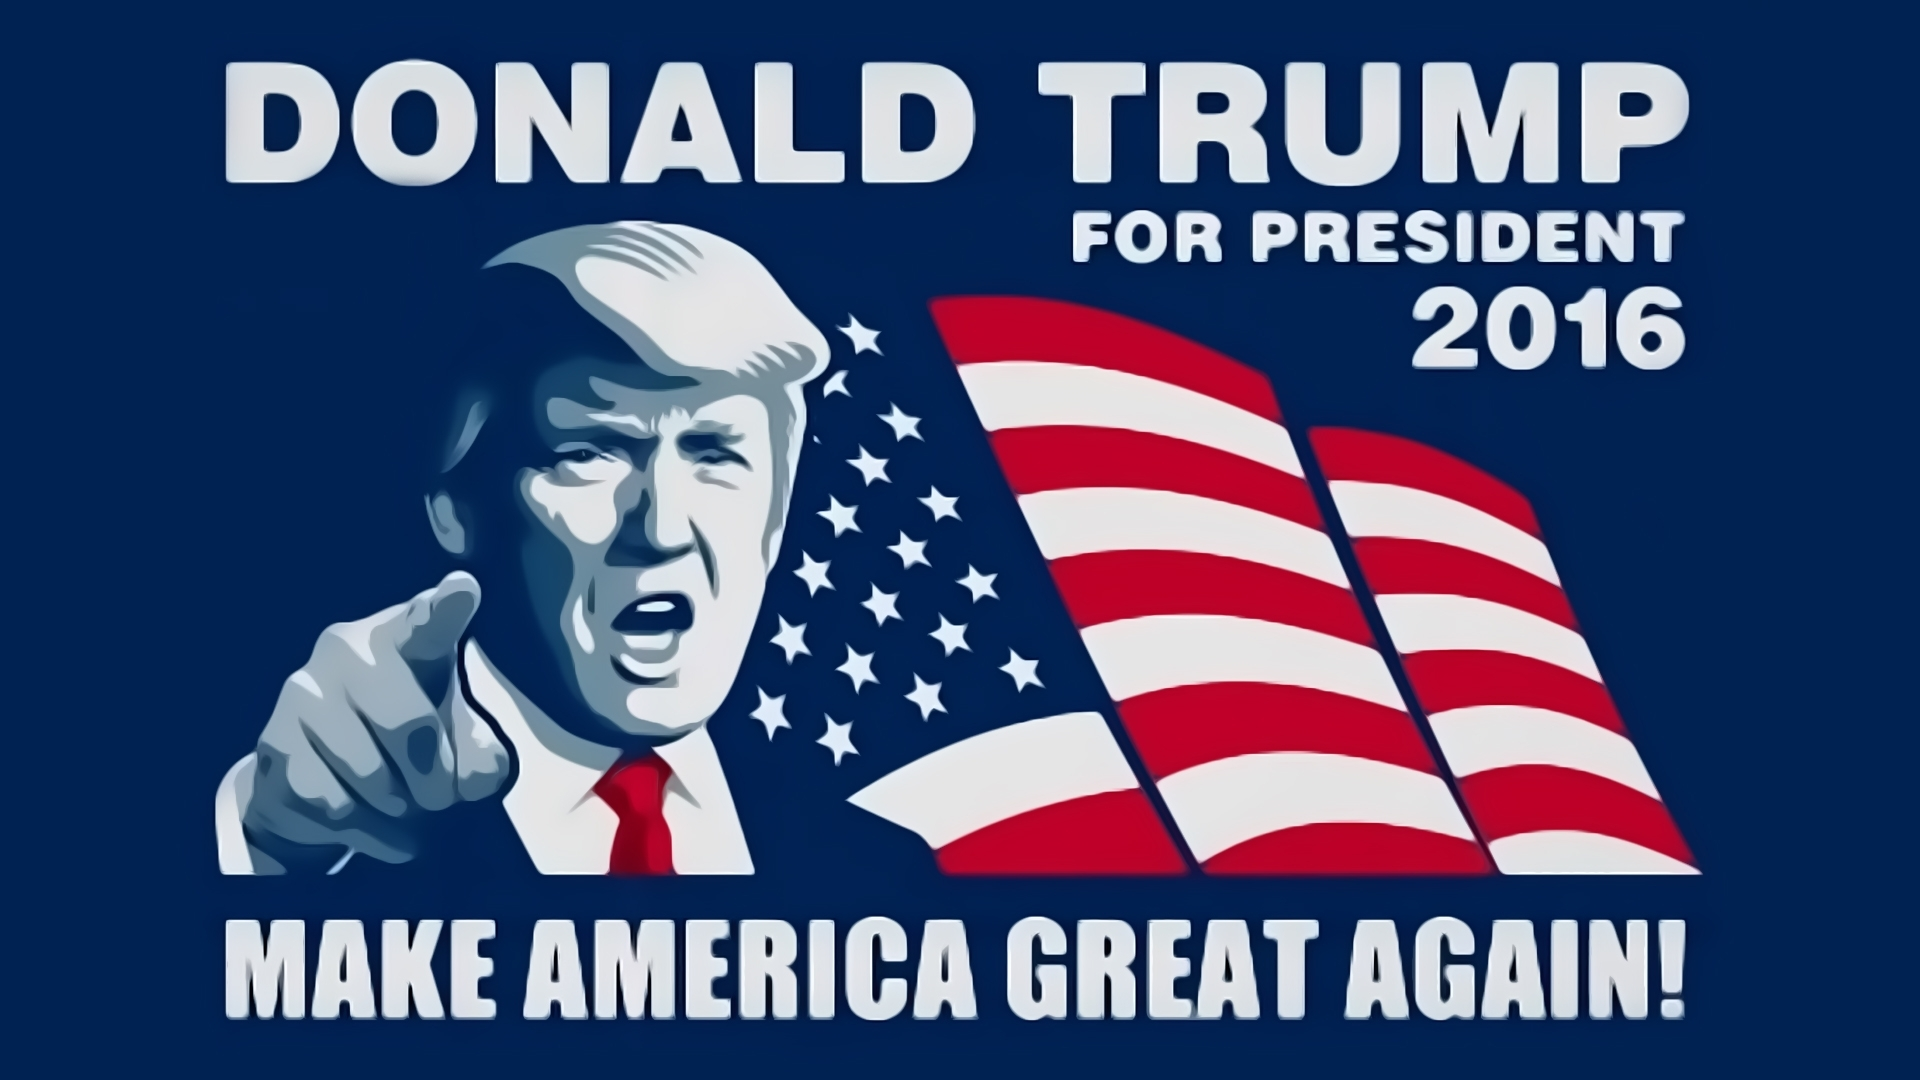 donald trump for president hd wallpaper | 1920x1080 | id:58344